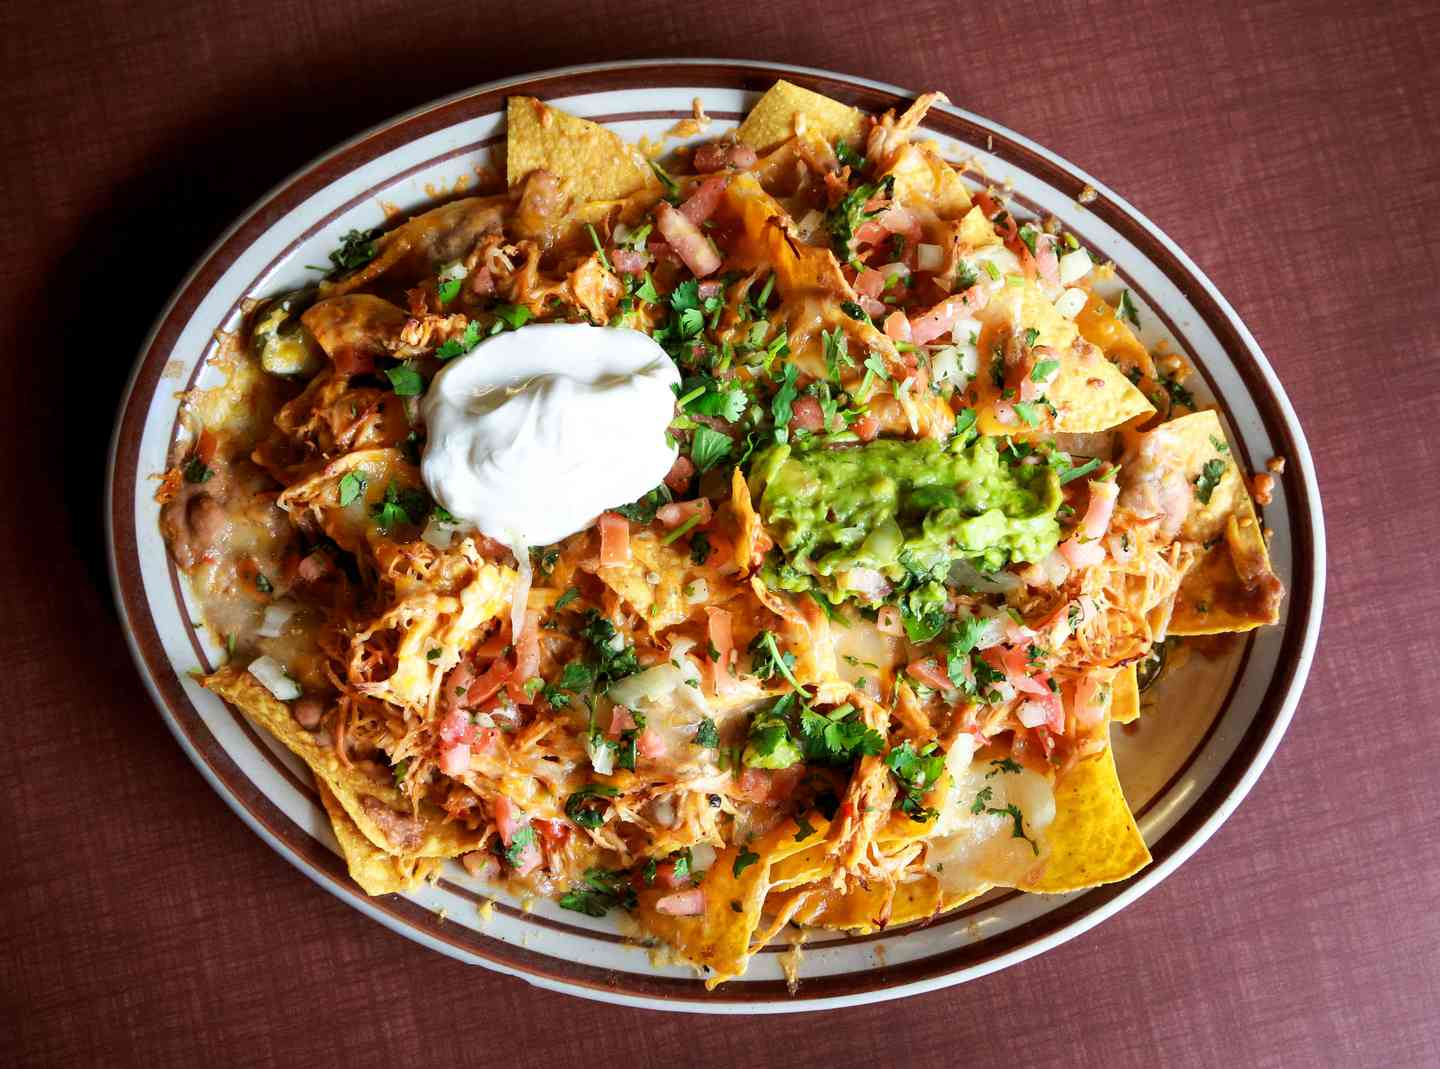 The Original Nachos Durango